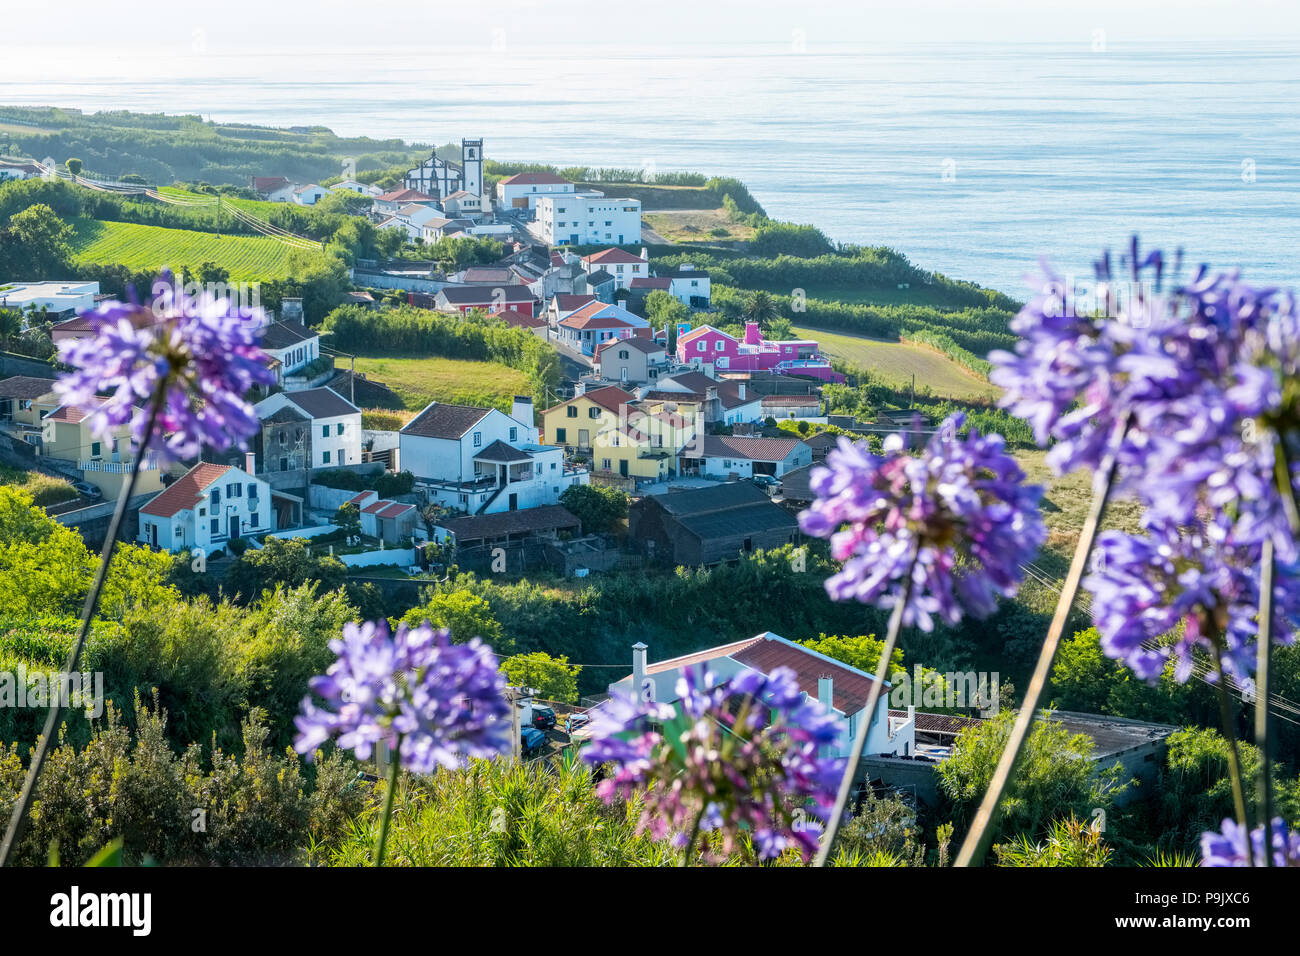 Typical scenery on the Azores ; wild flowers, village,sea. Sao Miguel, Azores - Stock Image